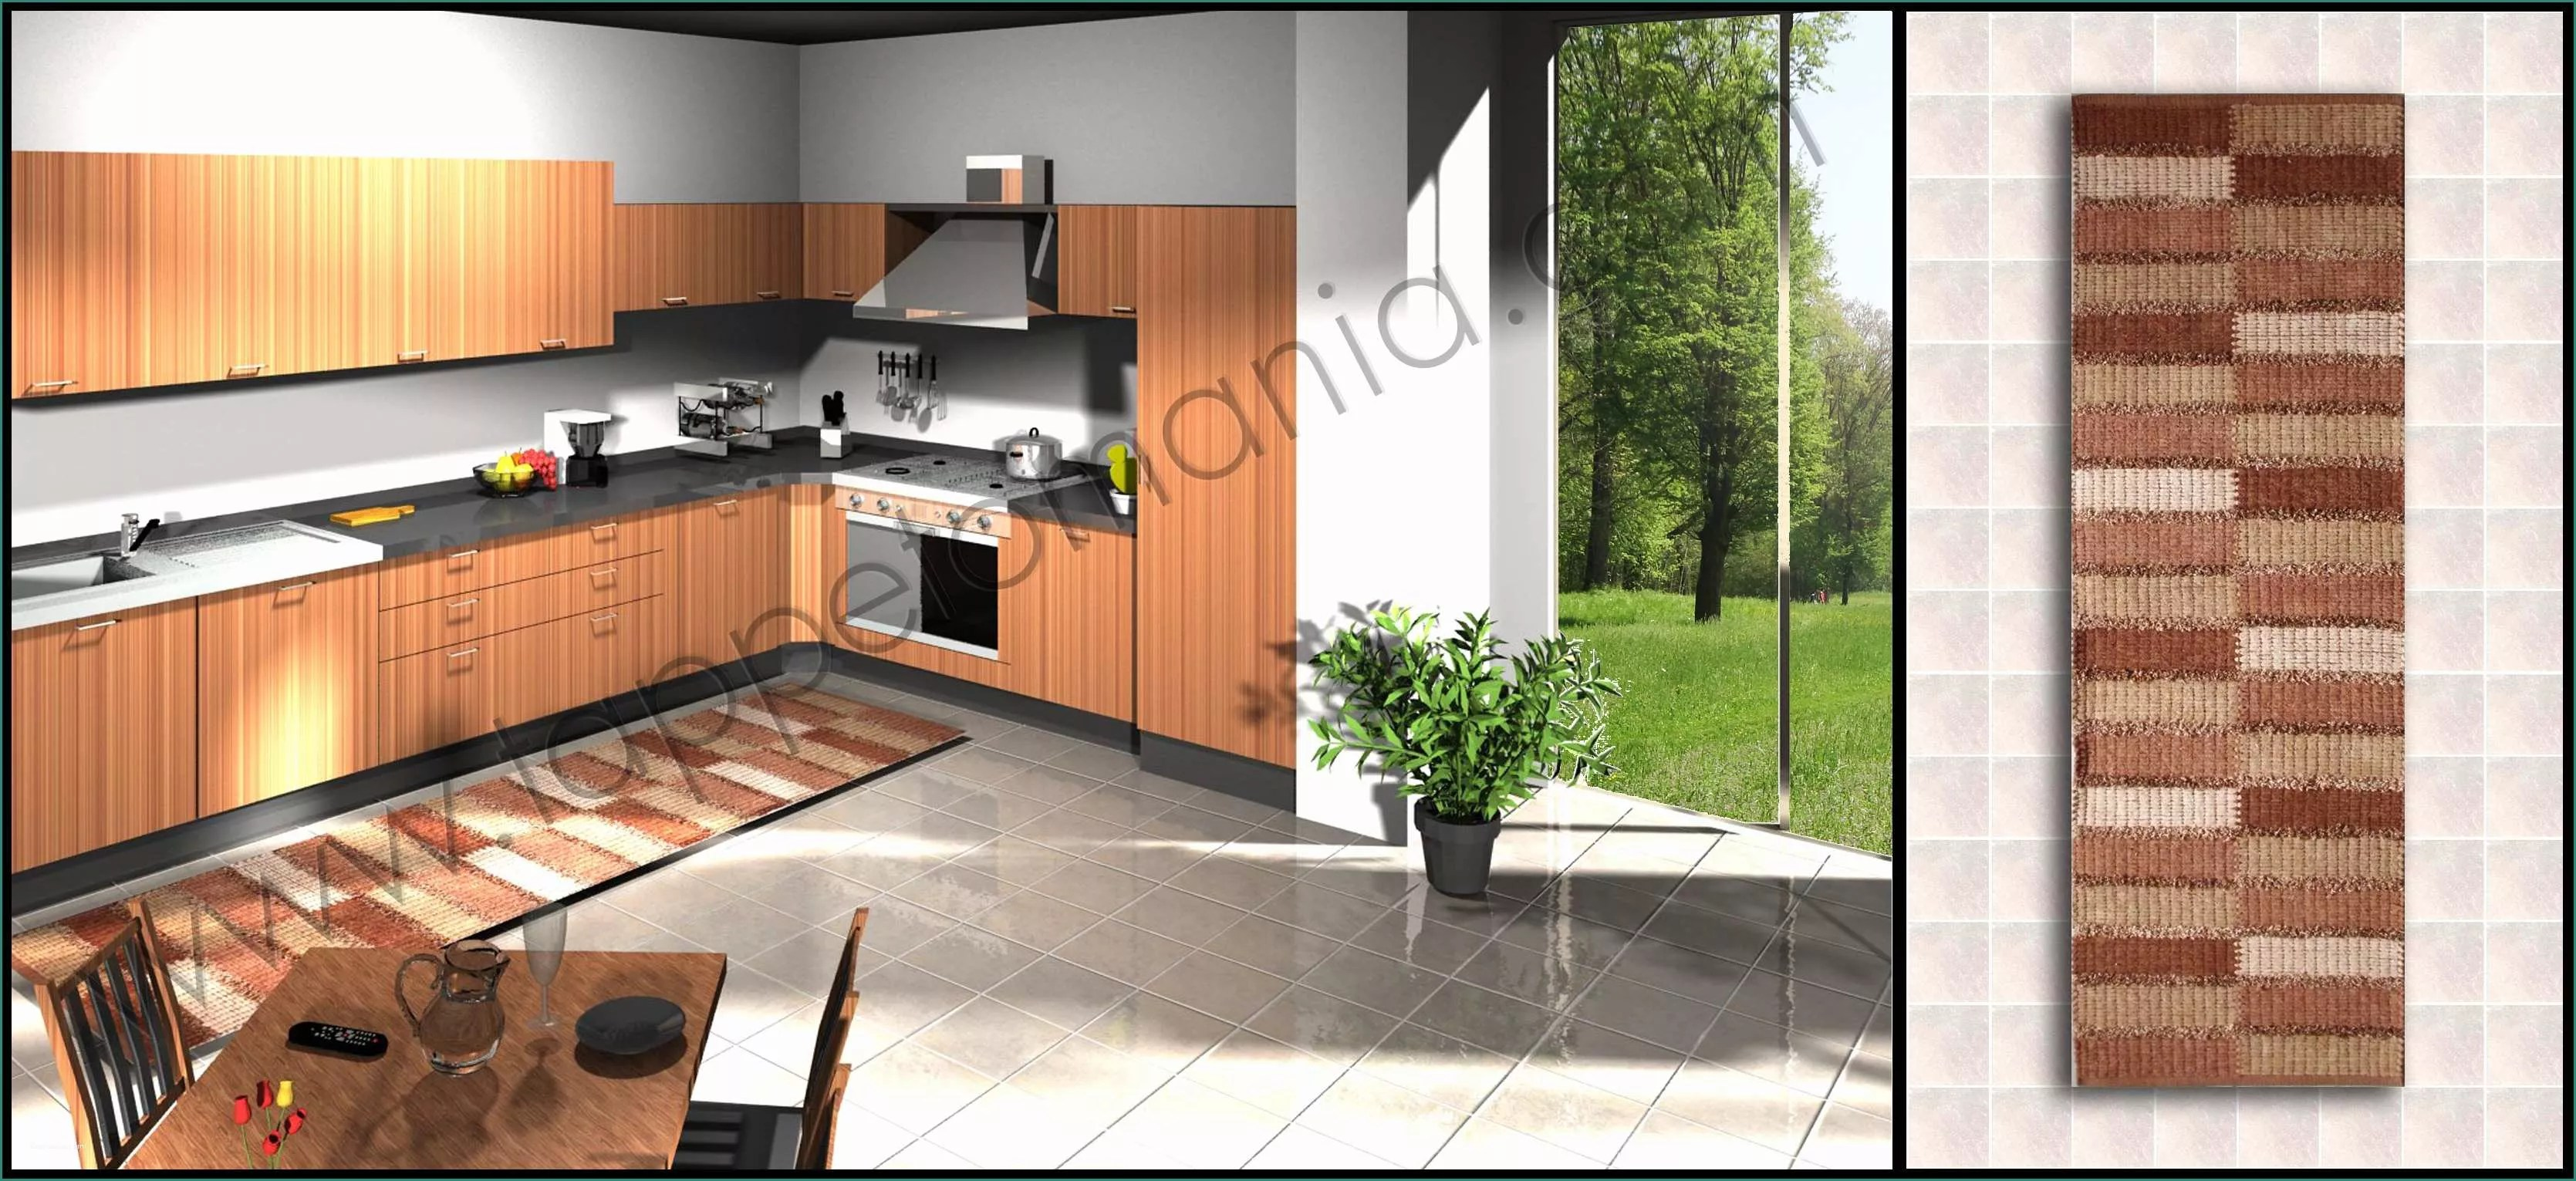 Cucina Lineare Leroy Merlin Beautiful Tappeti Cucina Leroy Merlin Pictures Lepicentre Info